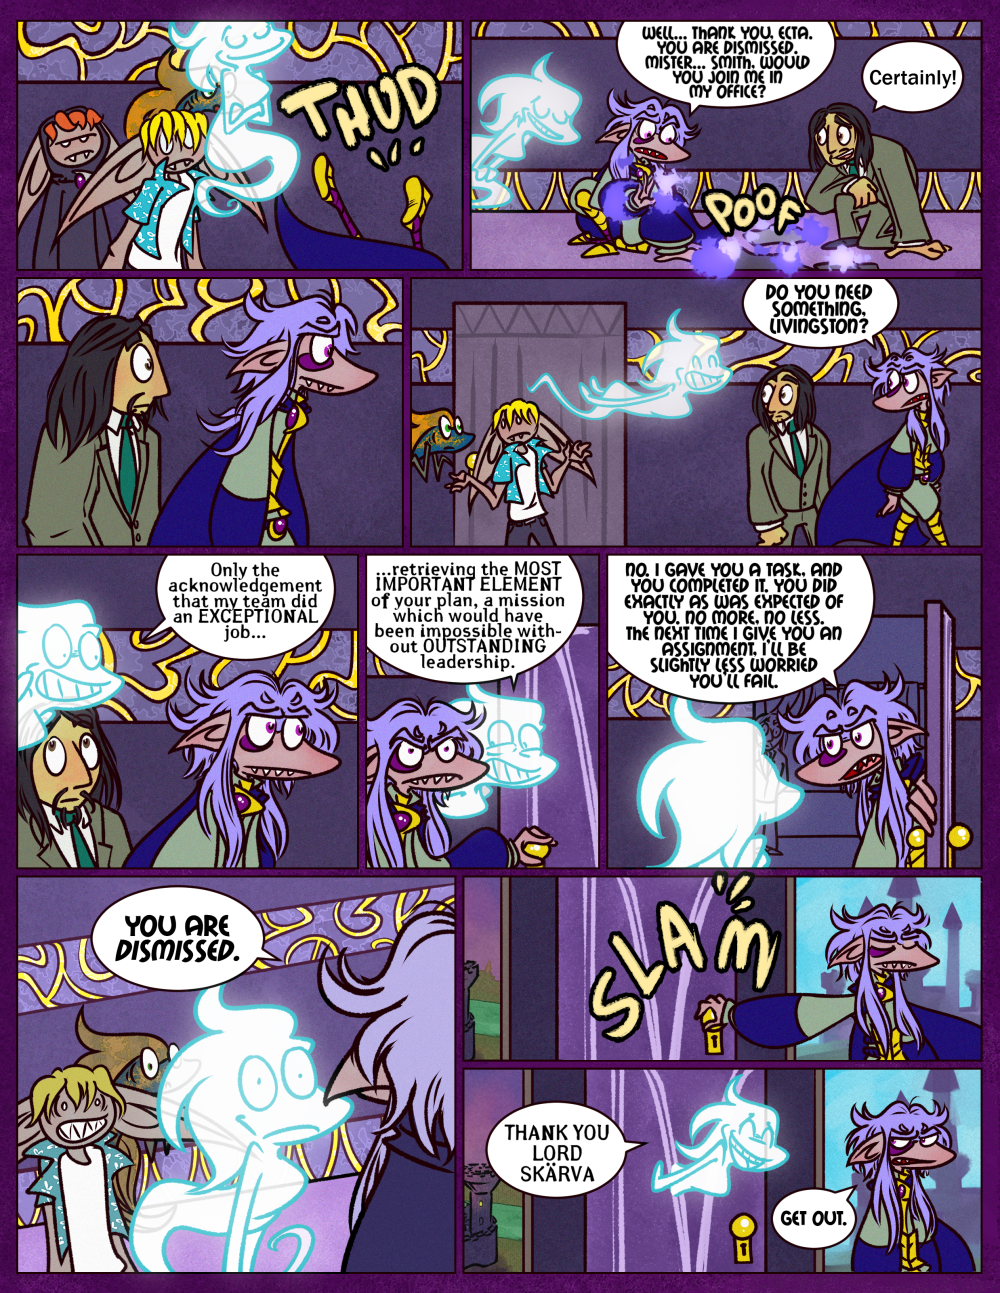 Beggars can't be choosers